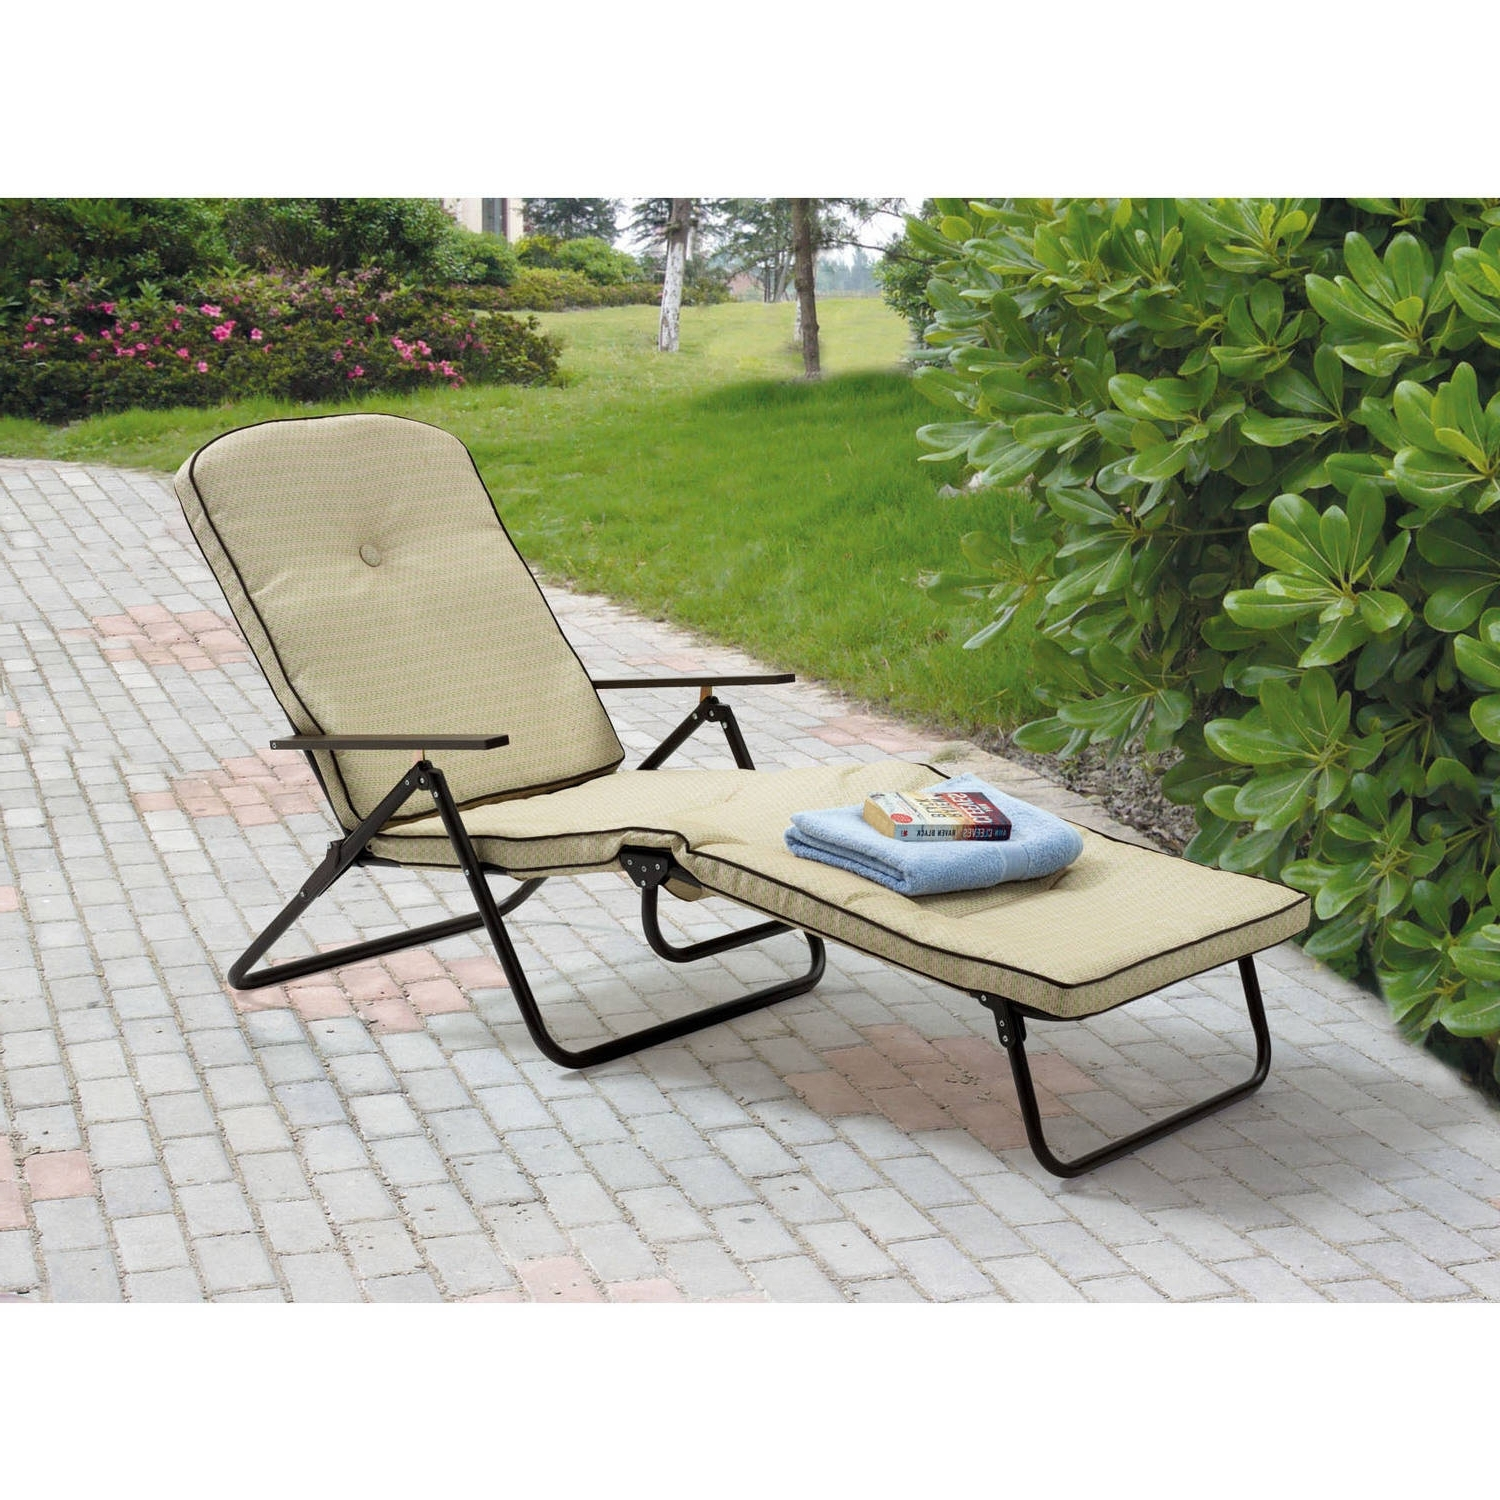 Mainstays Sand Dune Outdoor Padded Folding Chaise Lounge, Tan Intended For Most Current Folding Chaise Lounge Lawn Chairs (View 9 of 15)